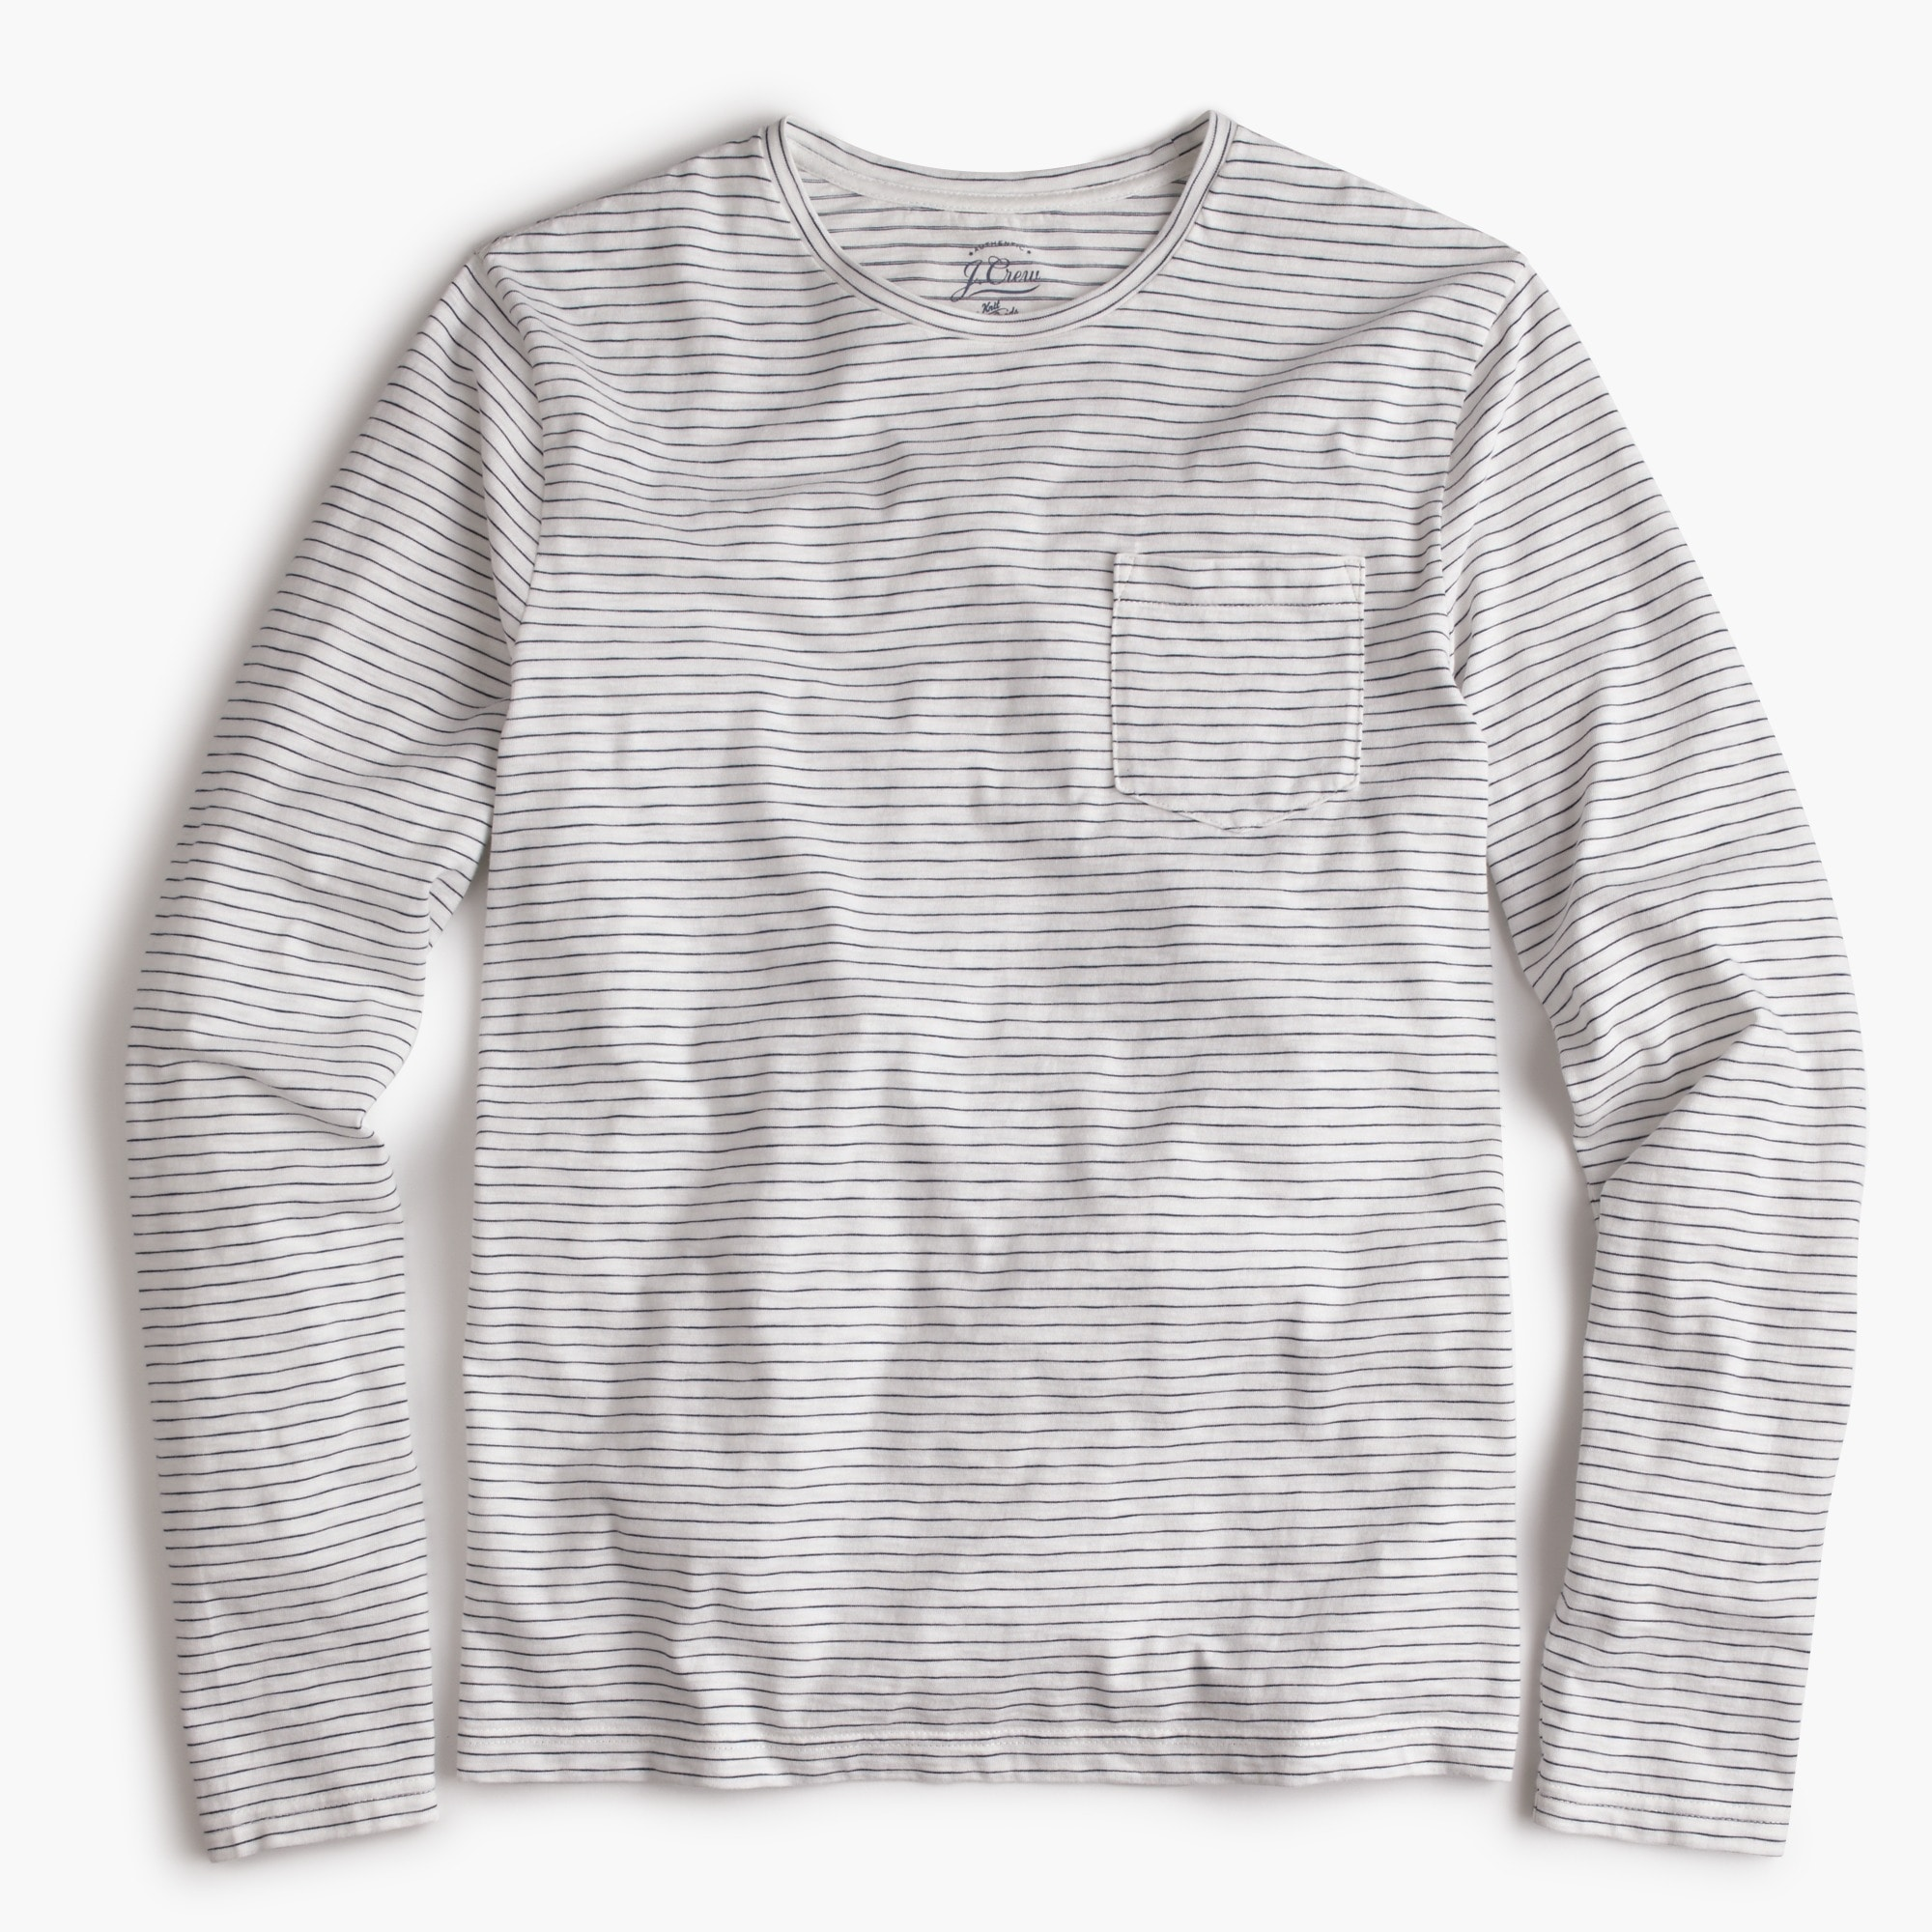 Slub cotton long-sleeve T-shirt in ivory stripe